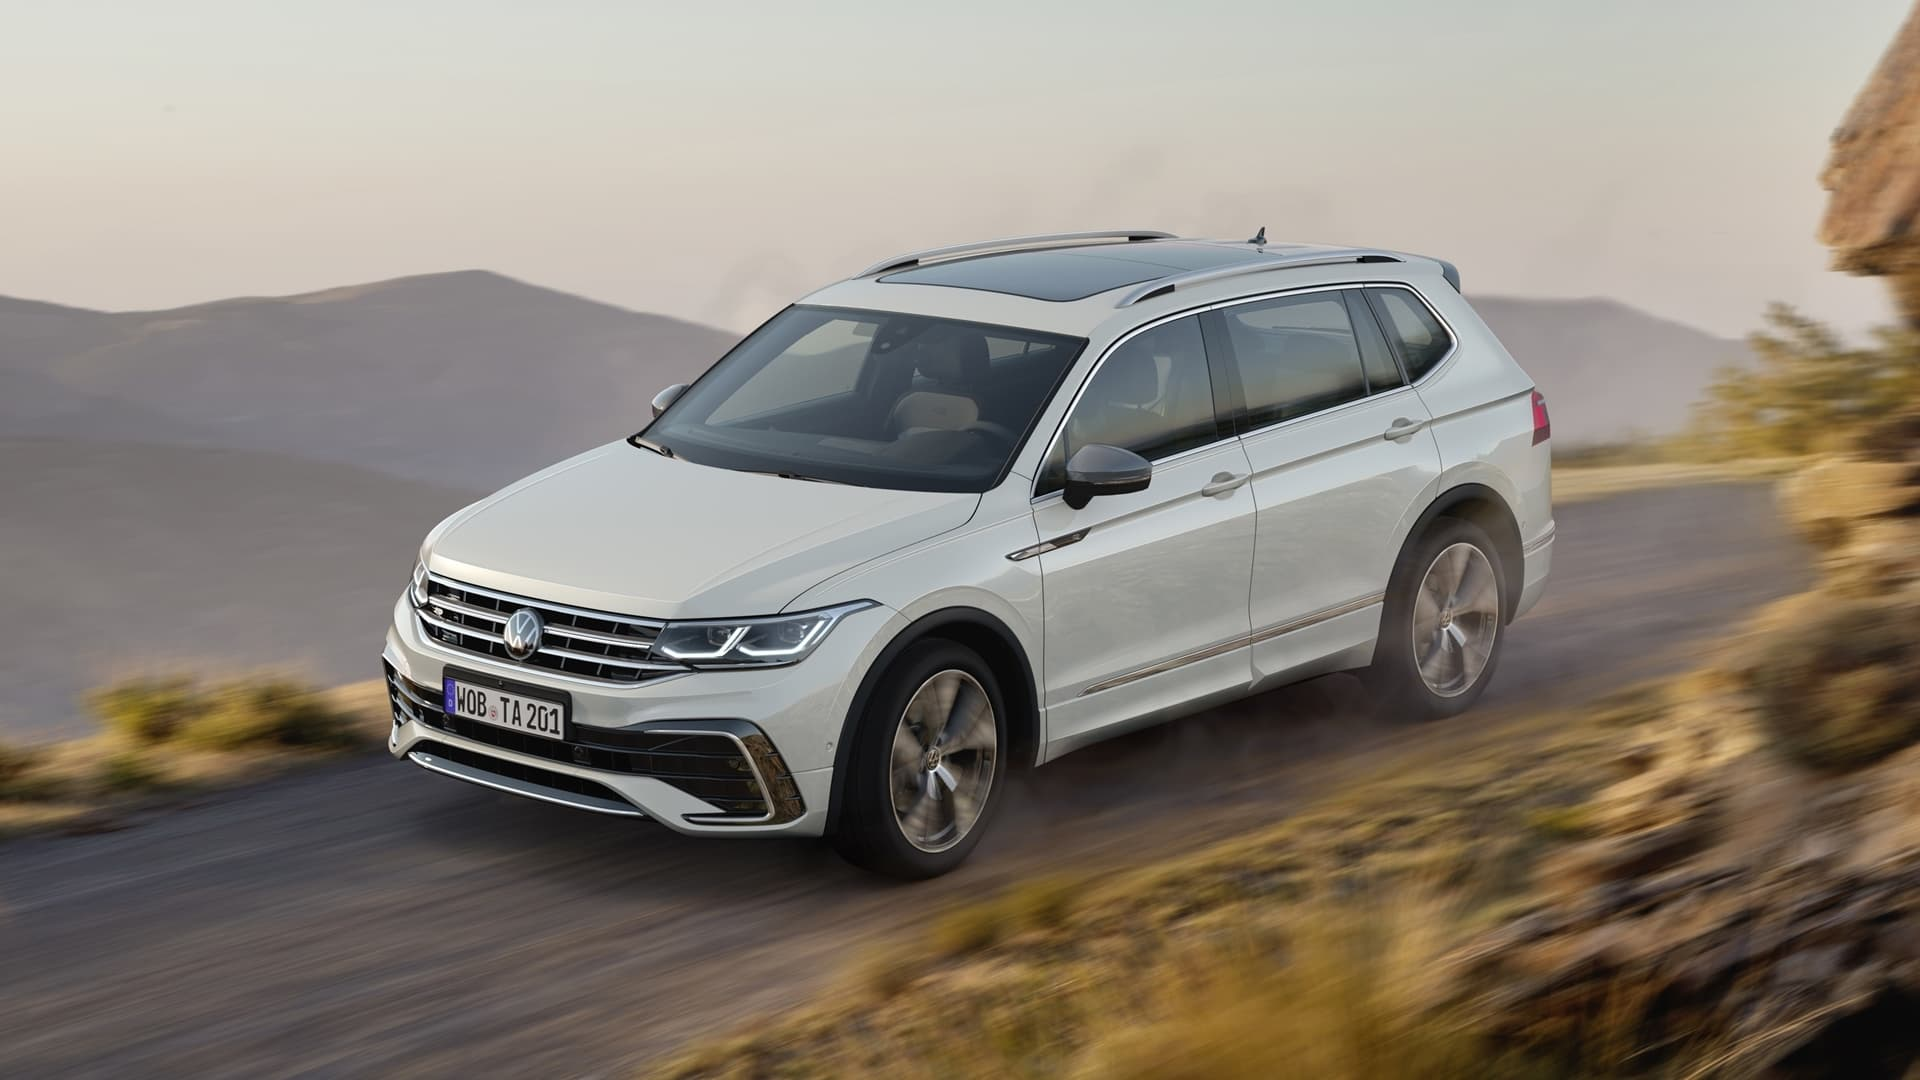 Volkswagen Tiguan Allspace 2021 Frontal Lateral 05121 007